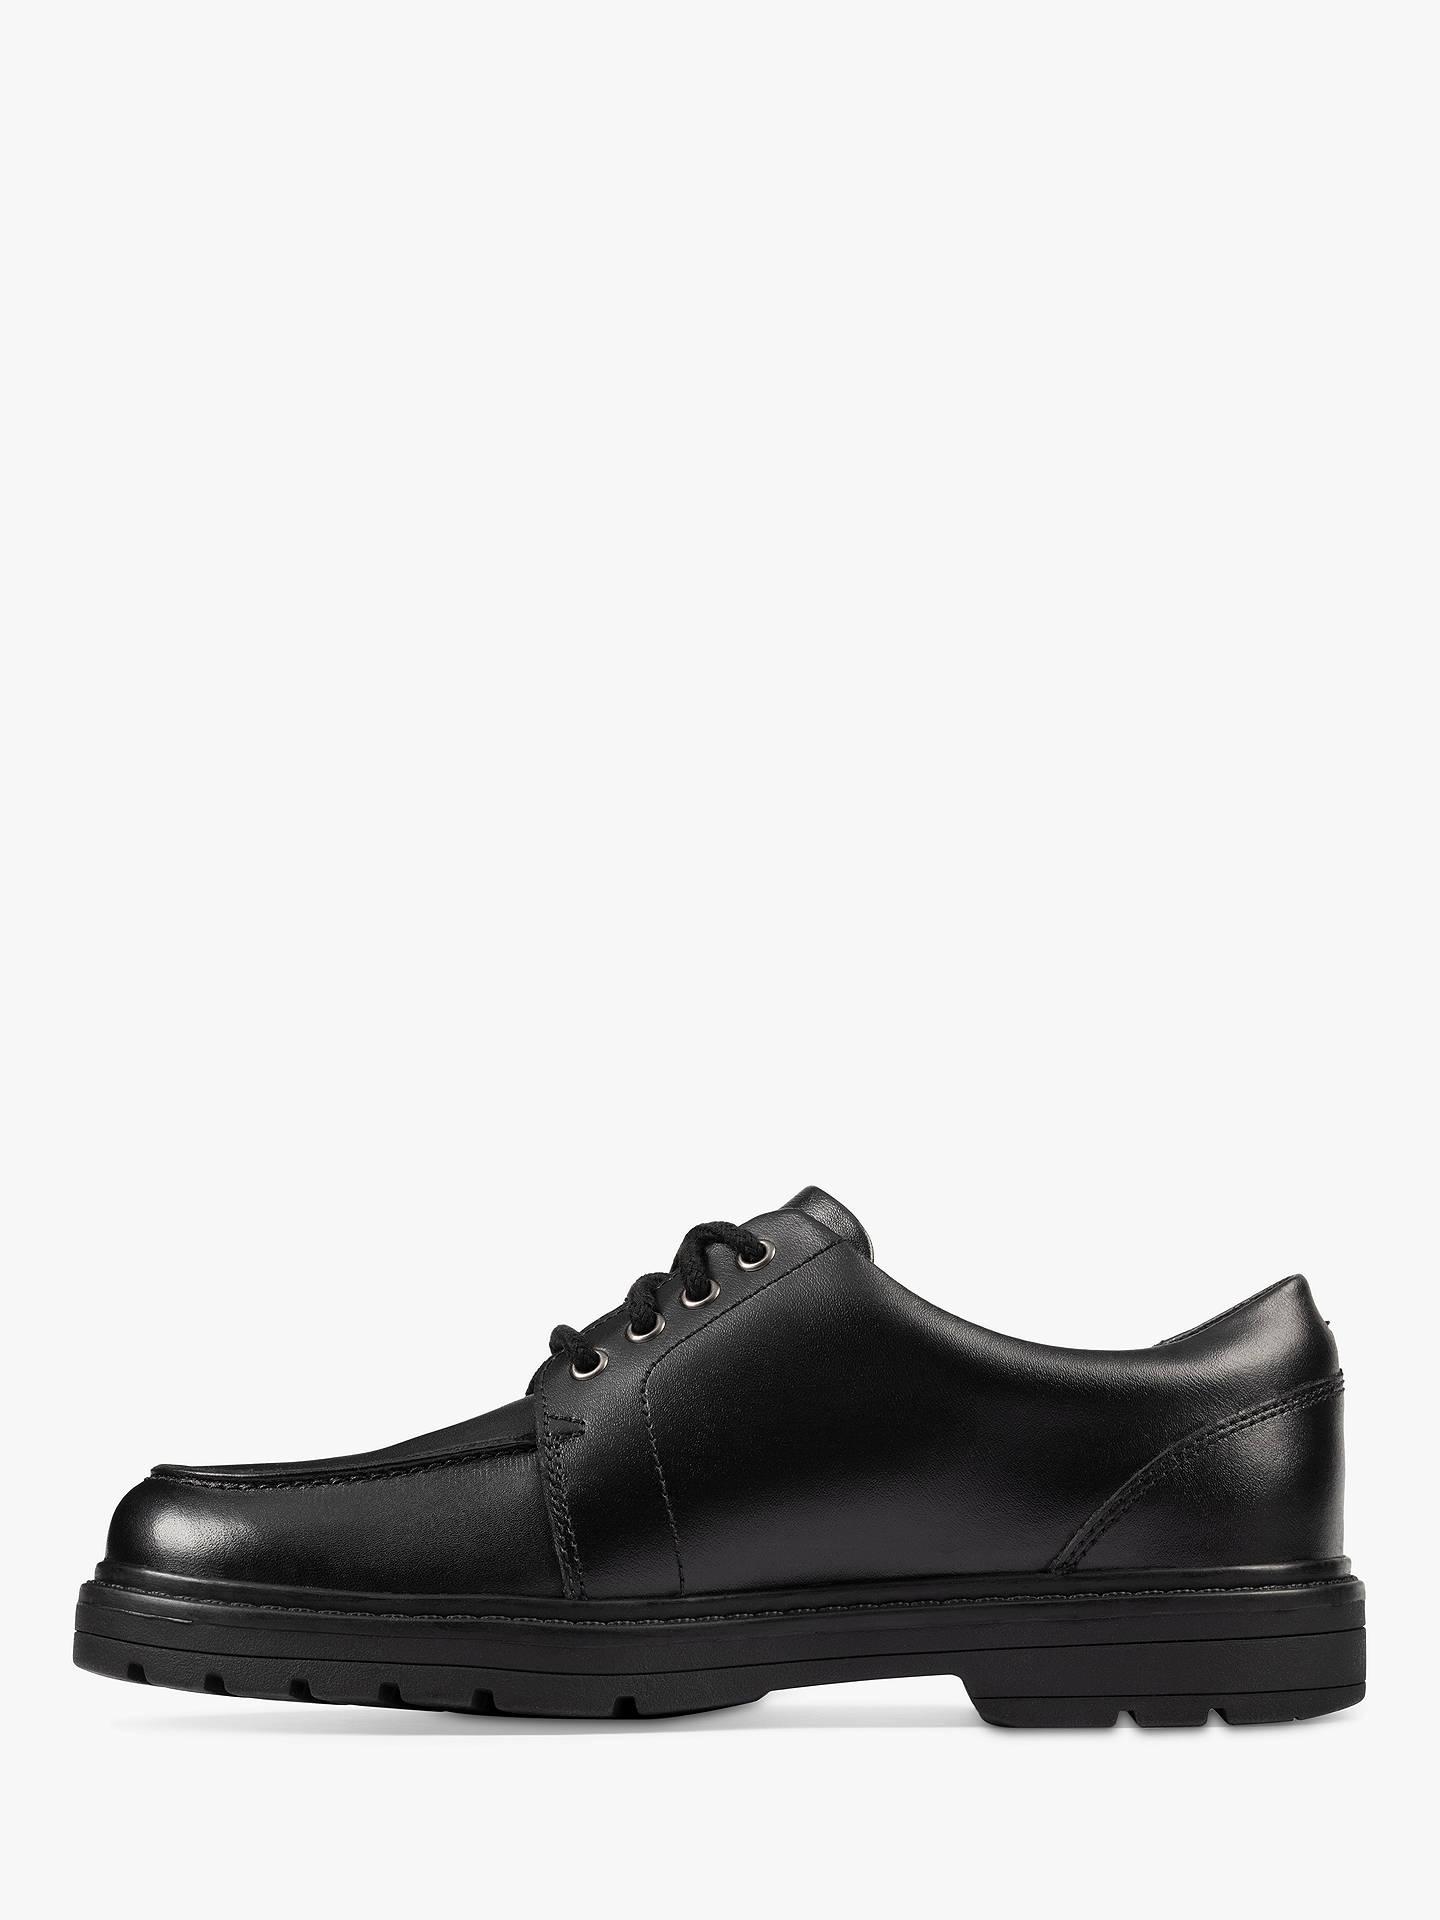 Buy Clarks Children's Loxham Pace School Shoes, Black Leather, 3F Online at johnlewis.com